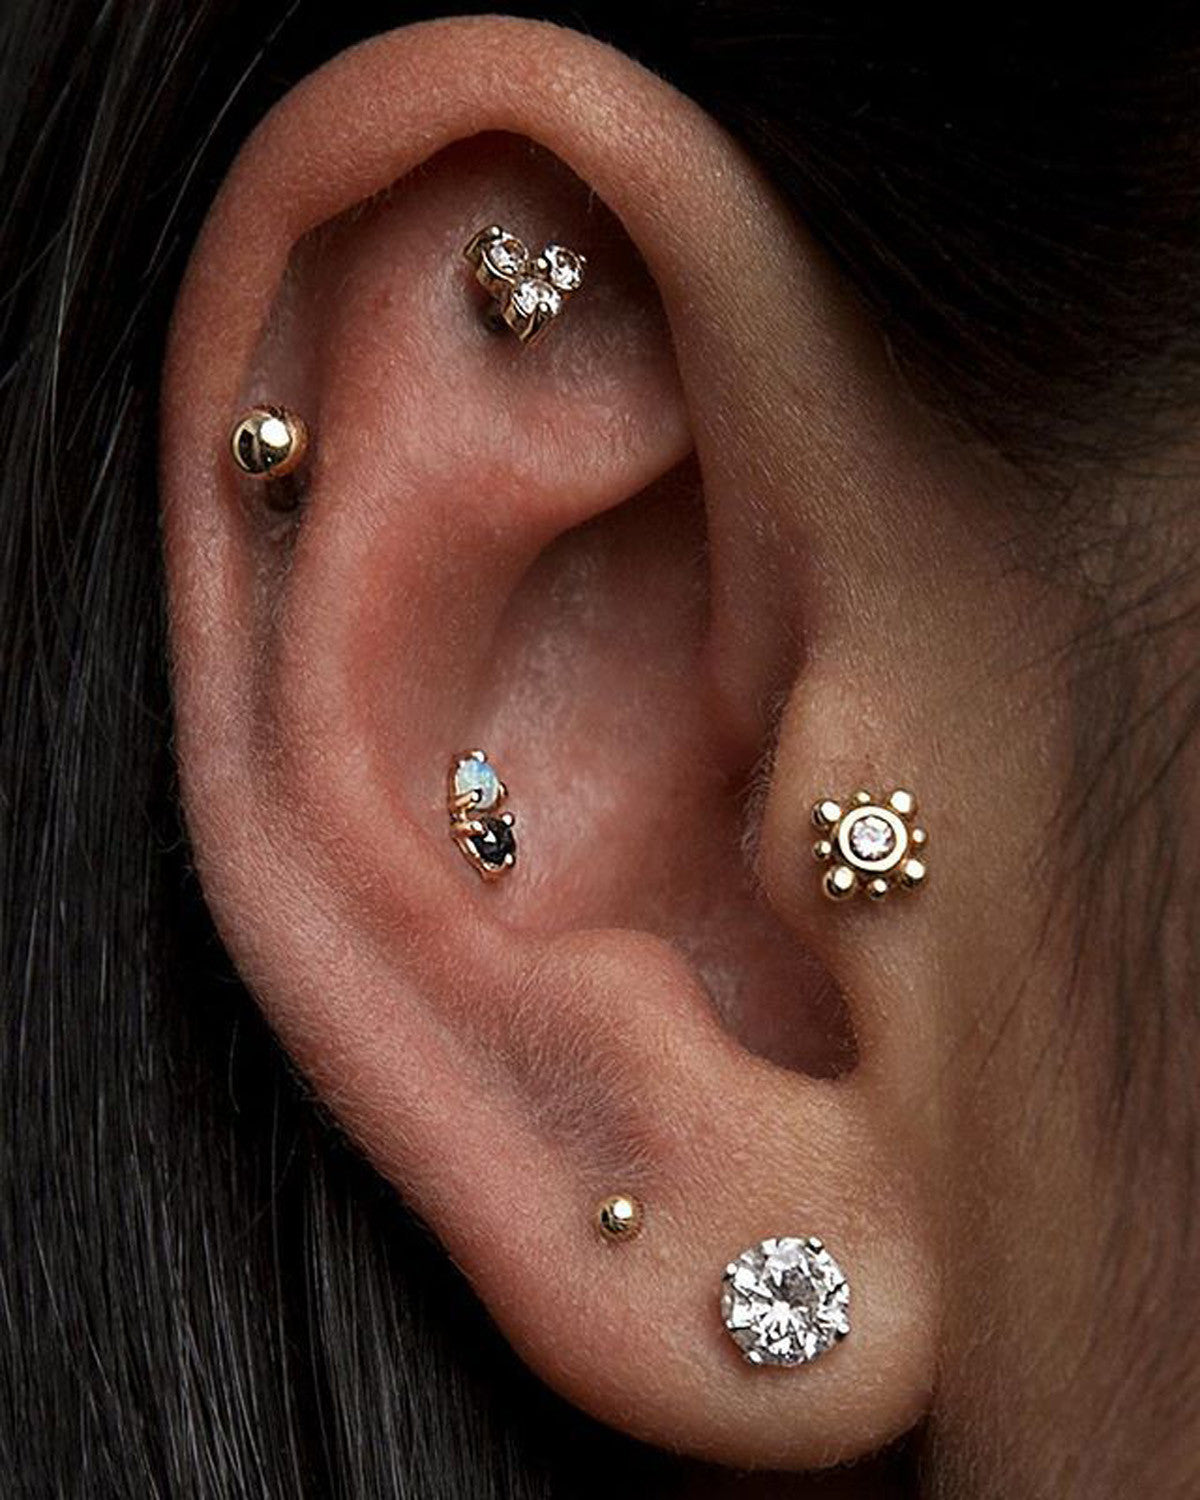 Unique Multiple Ear Piercing Ideas with Jewels - Tragus Stud, Cartilage Studs, Helix Studs at  MyBodiArt.com